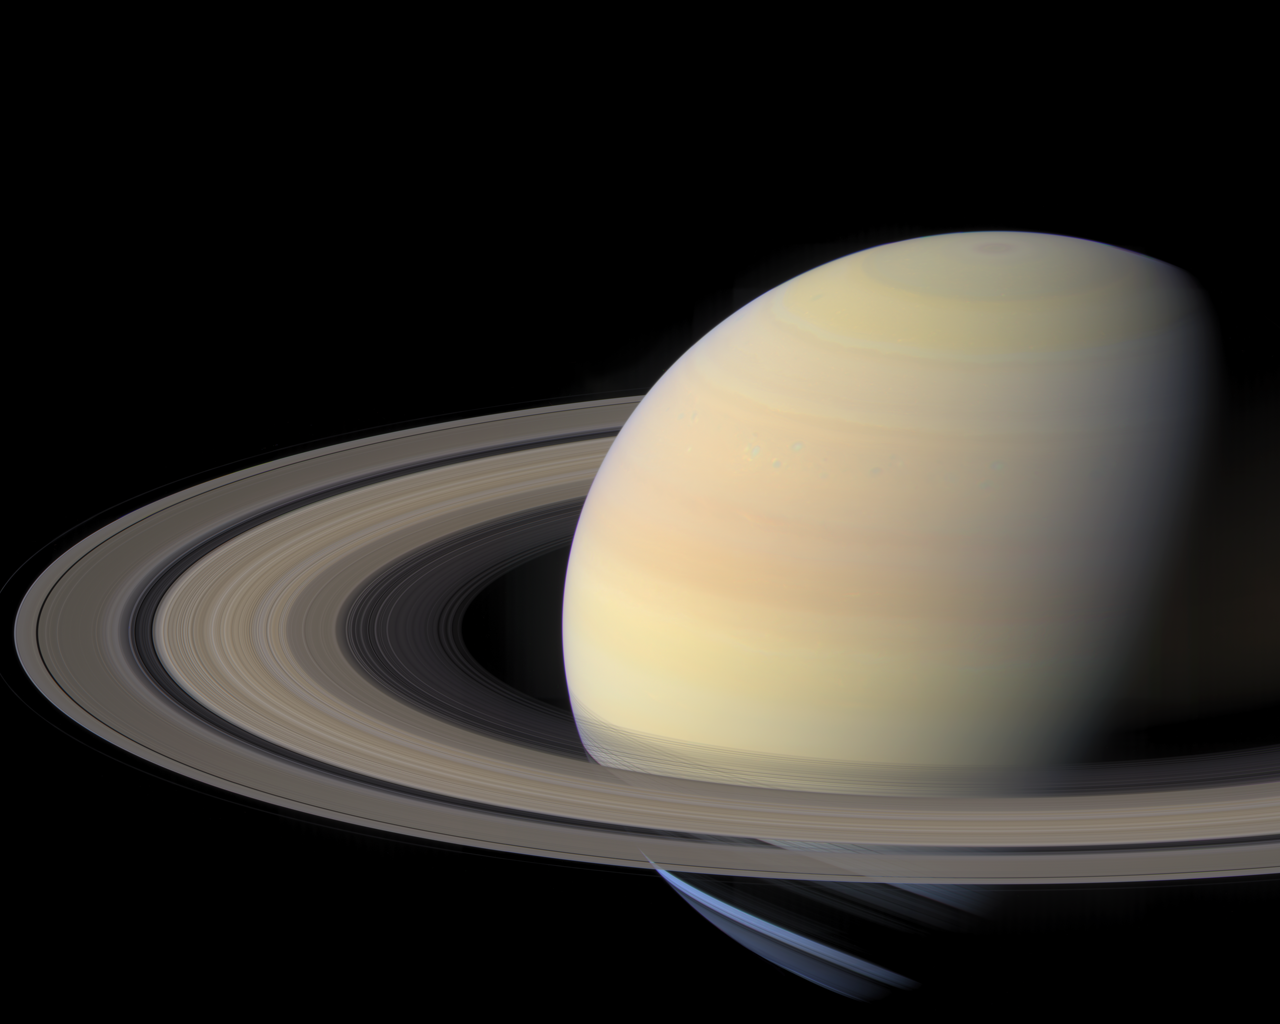 Saturn Wallpapers | Resolution: 1280x1024 px, Ethelene Mary